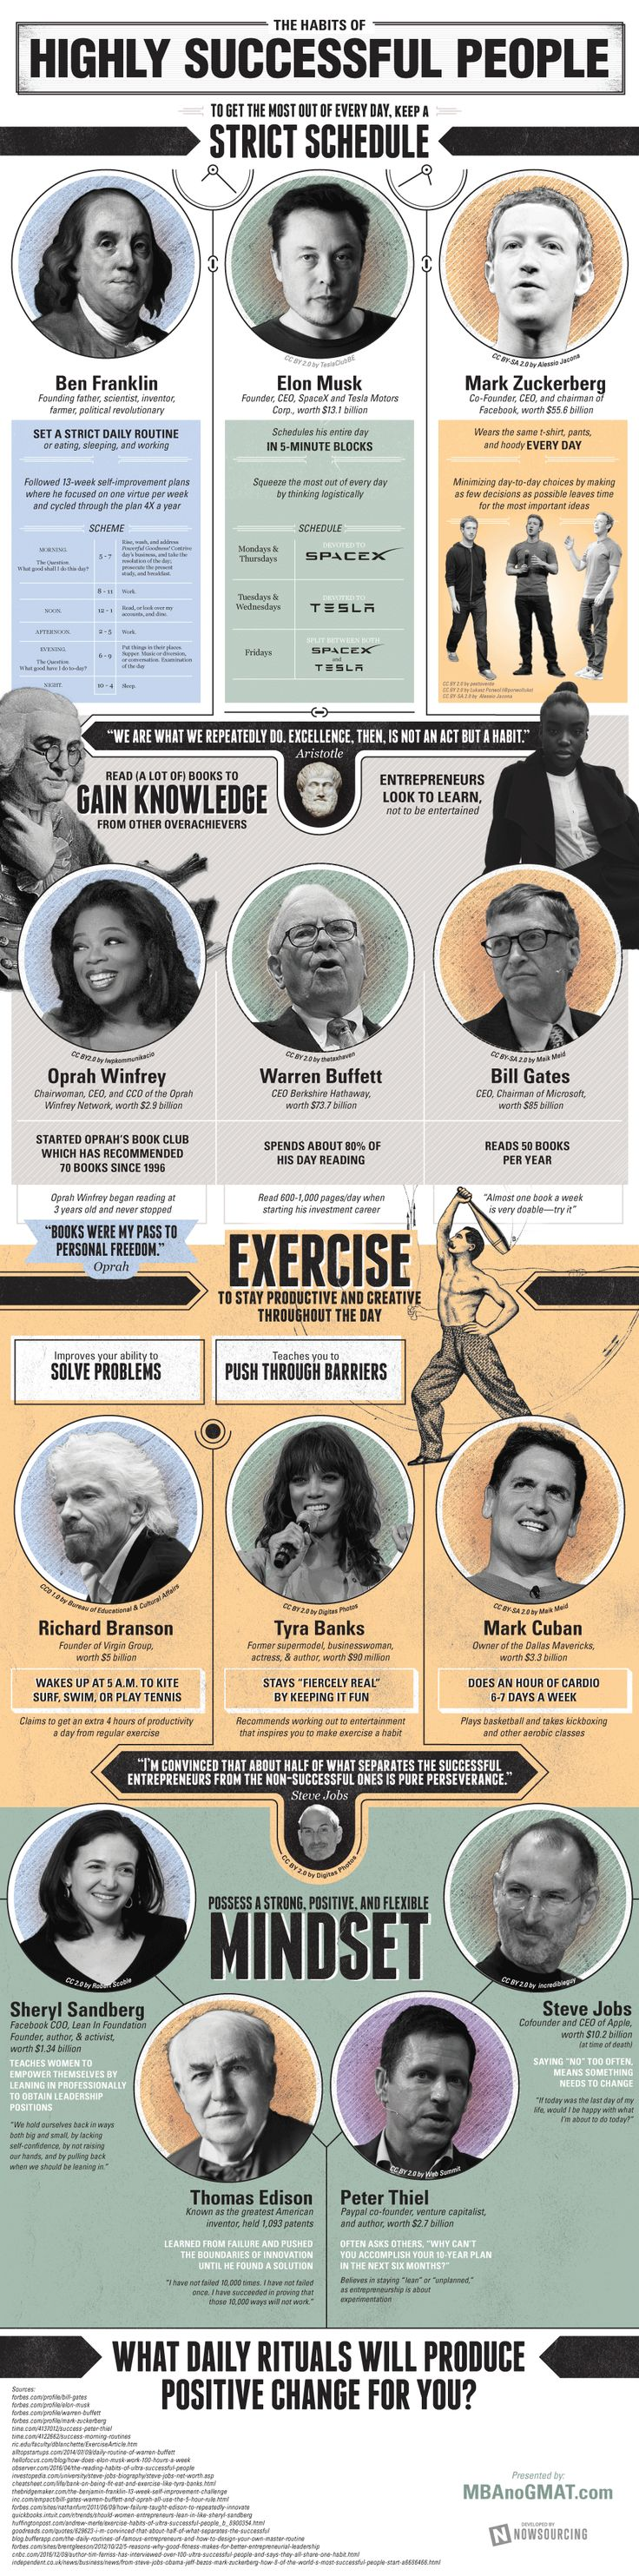 The Habits of Highly Successful Entrepreneurs [Infographic]  Pinterest: @entmillionaire